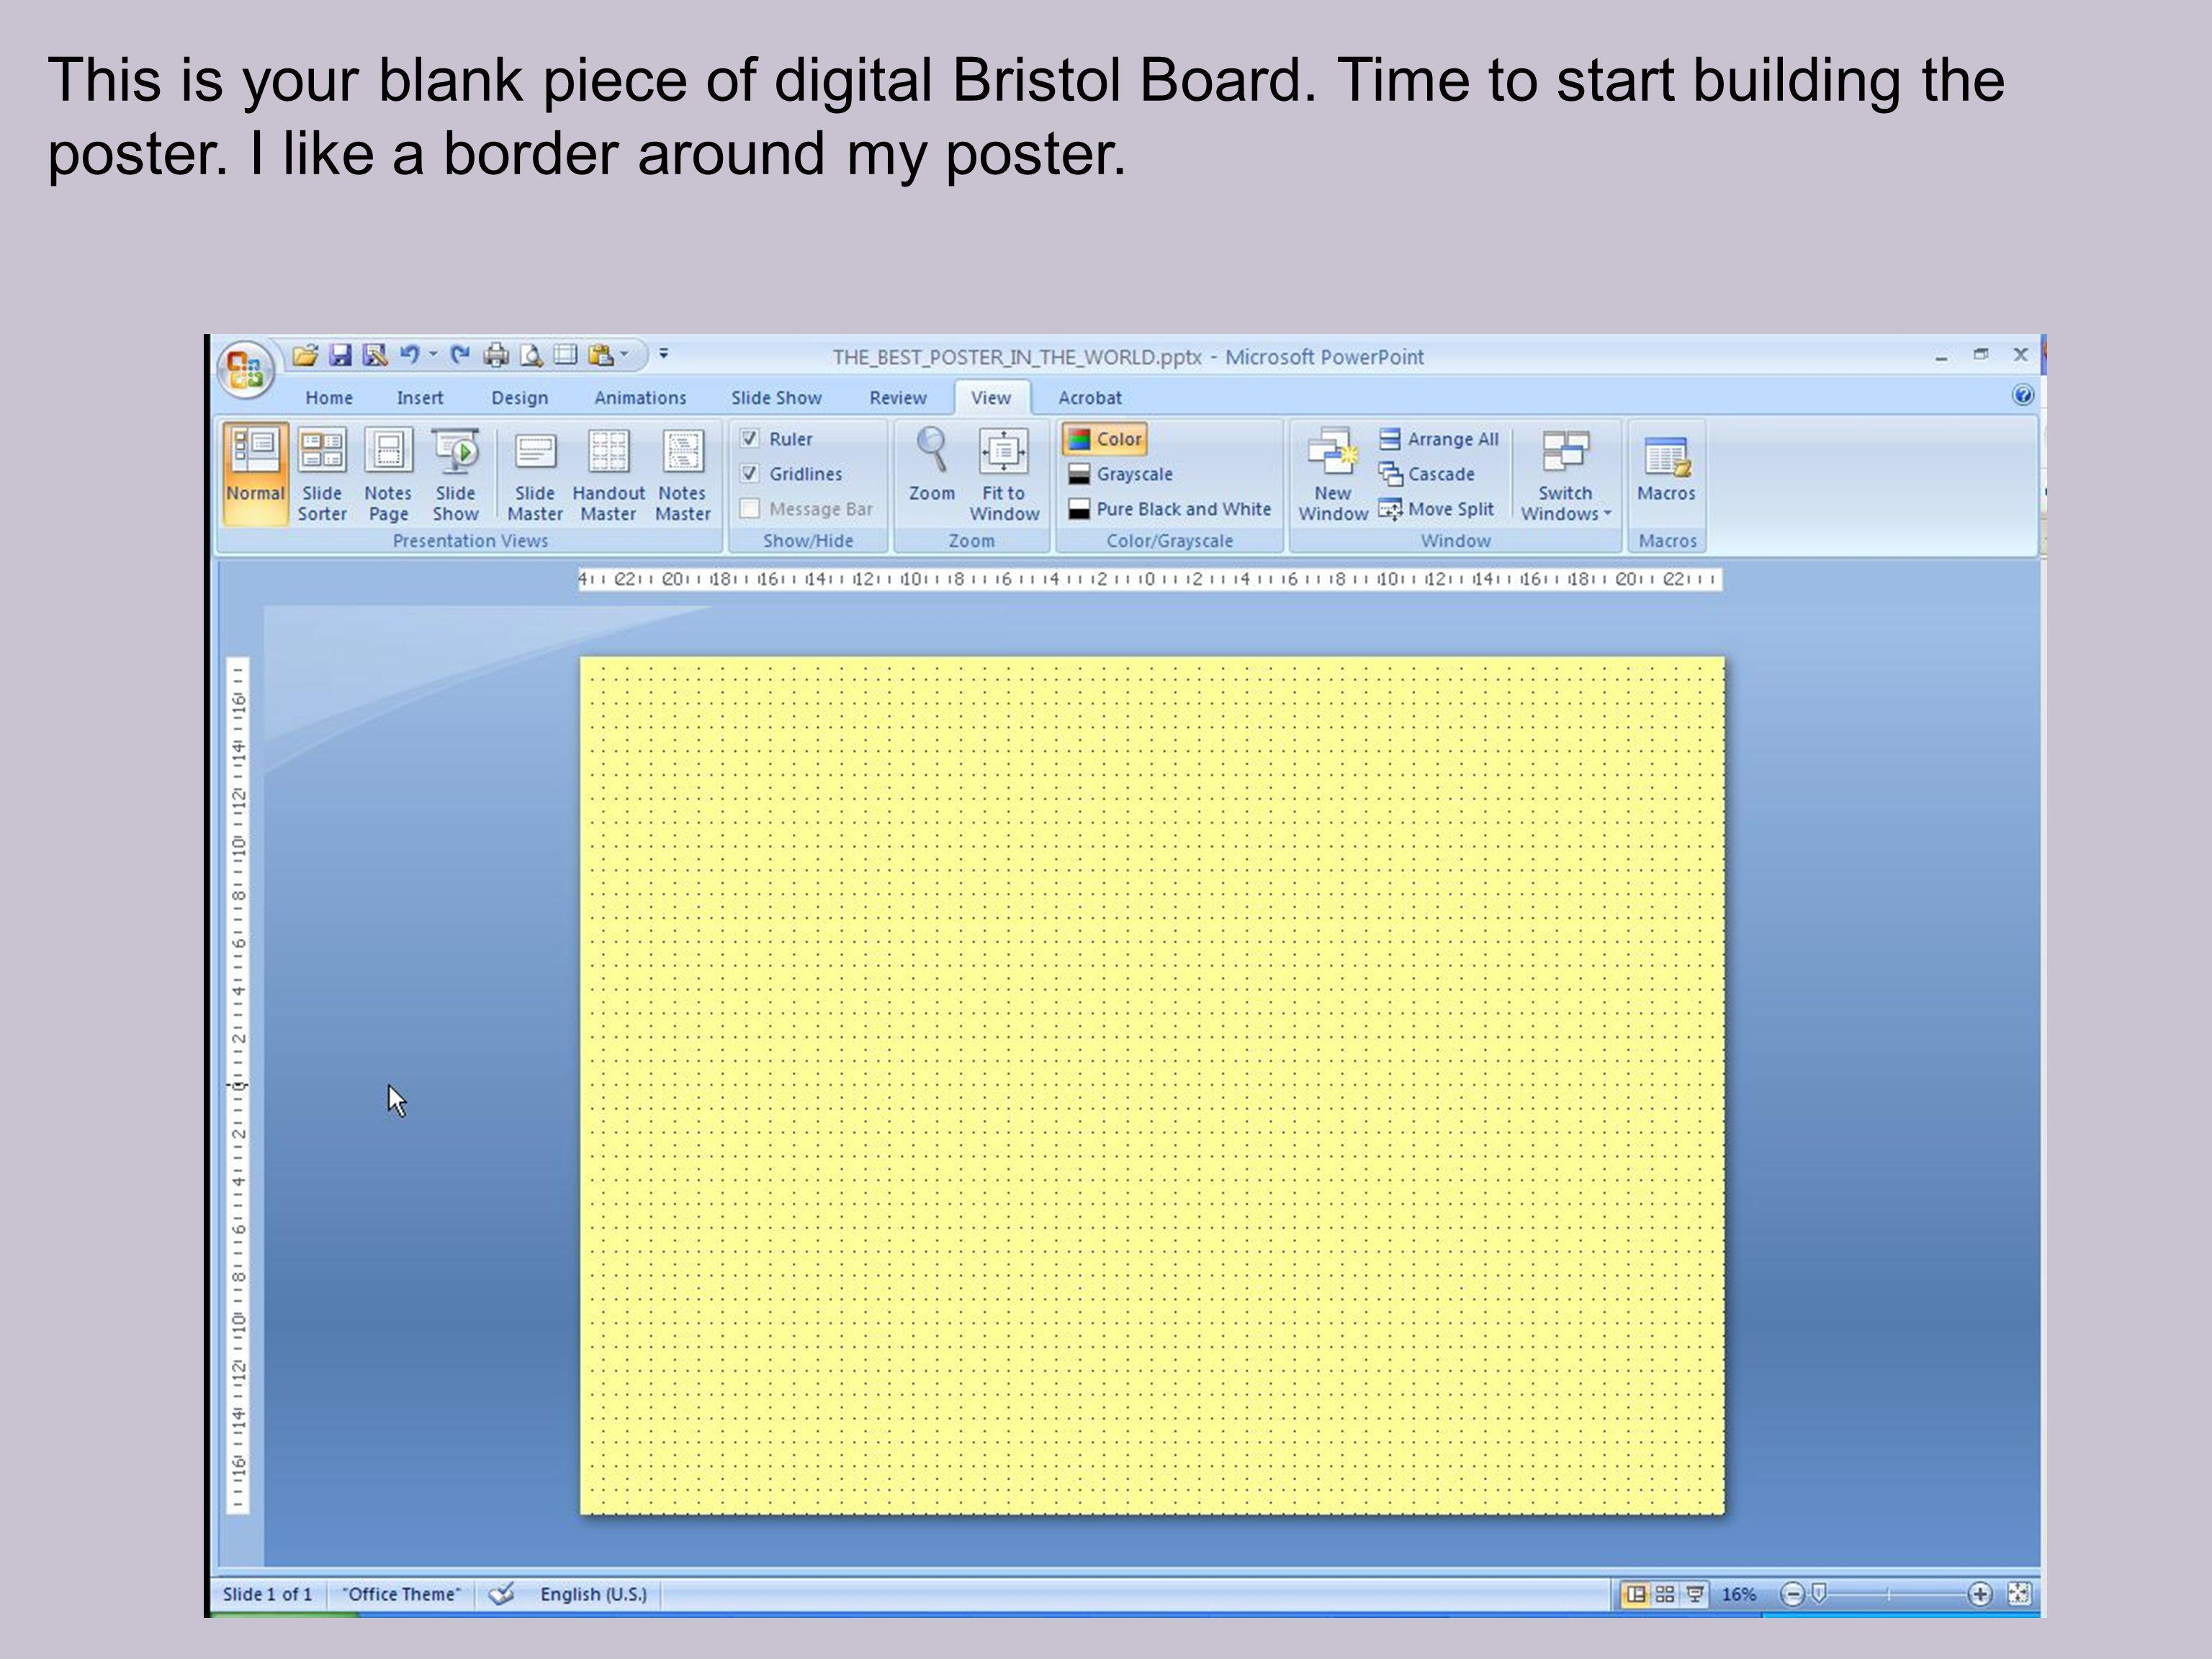 This is your blank piece of digital Bristol Board. Time to start building the poster. I like a border around my poster.